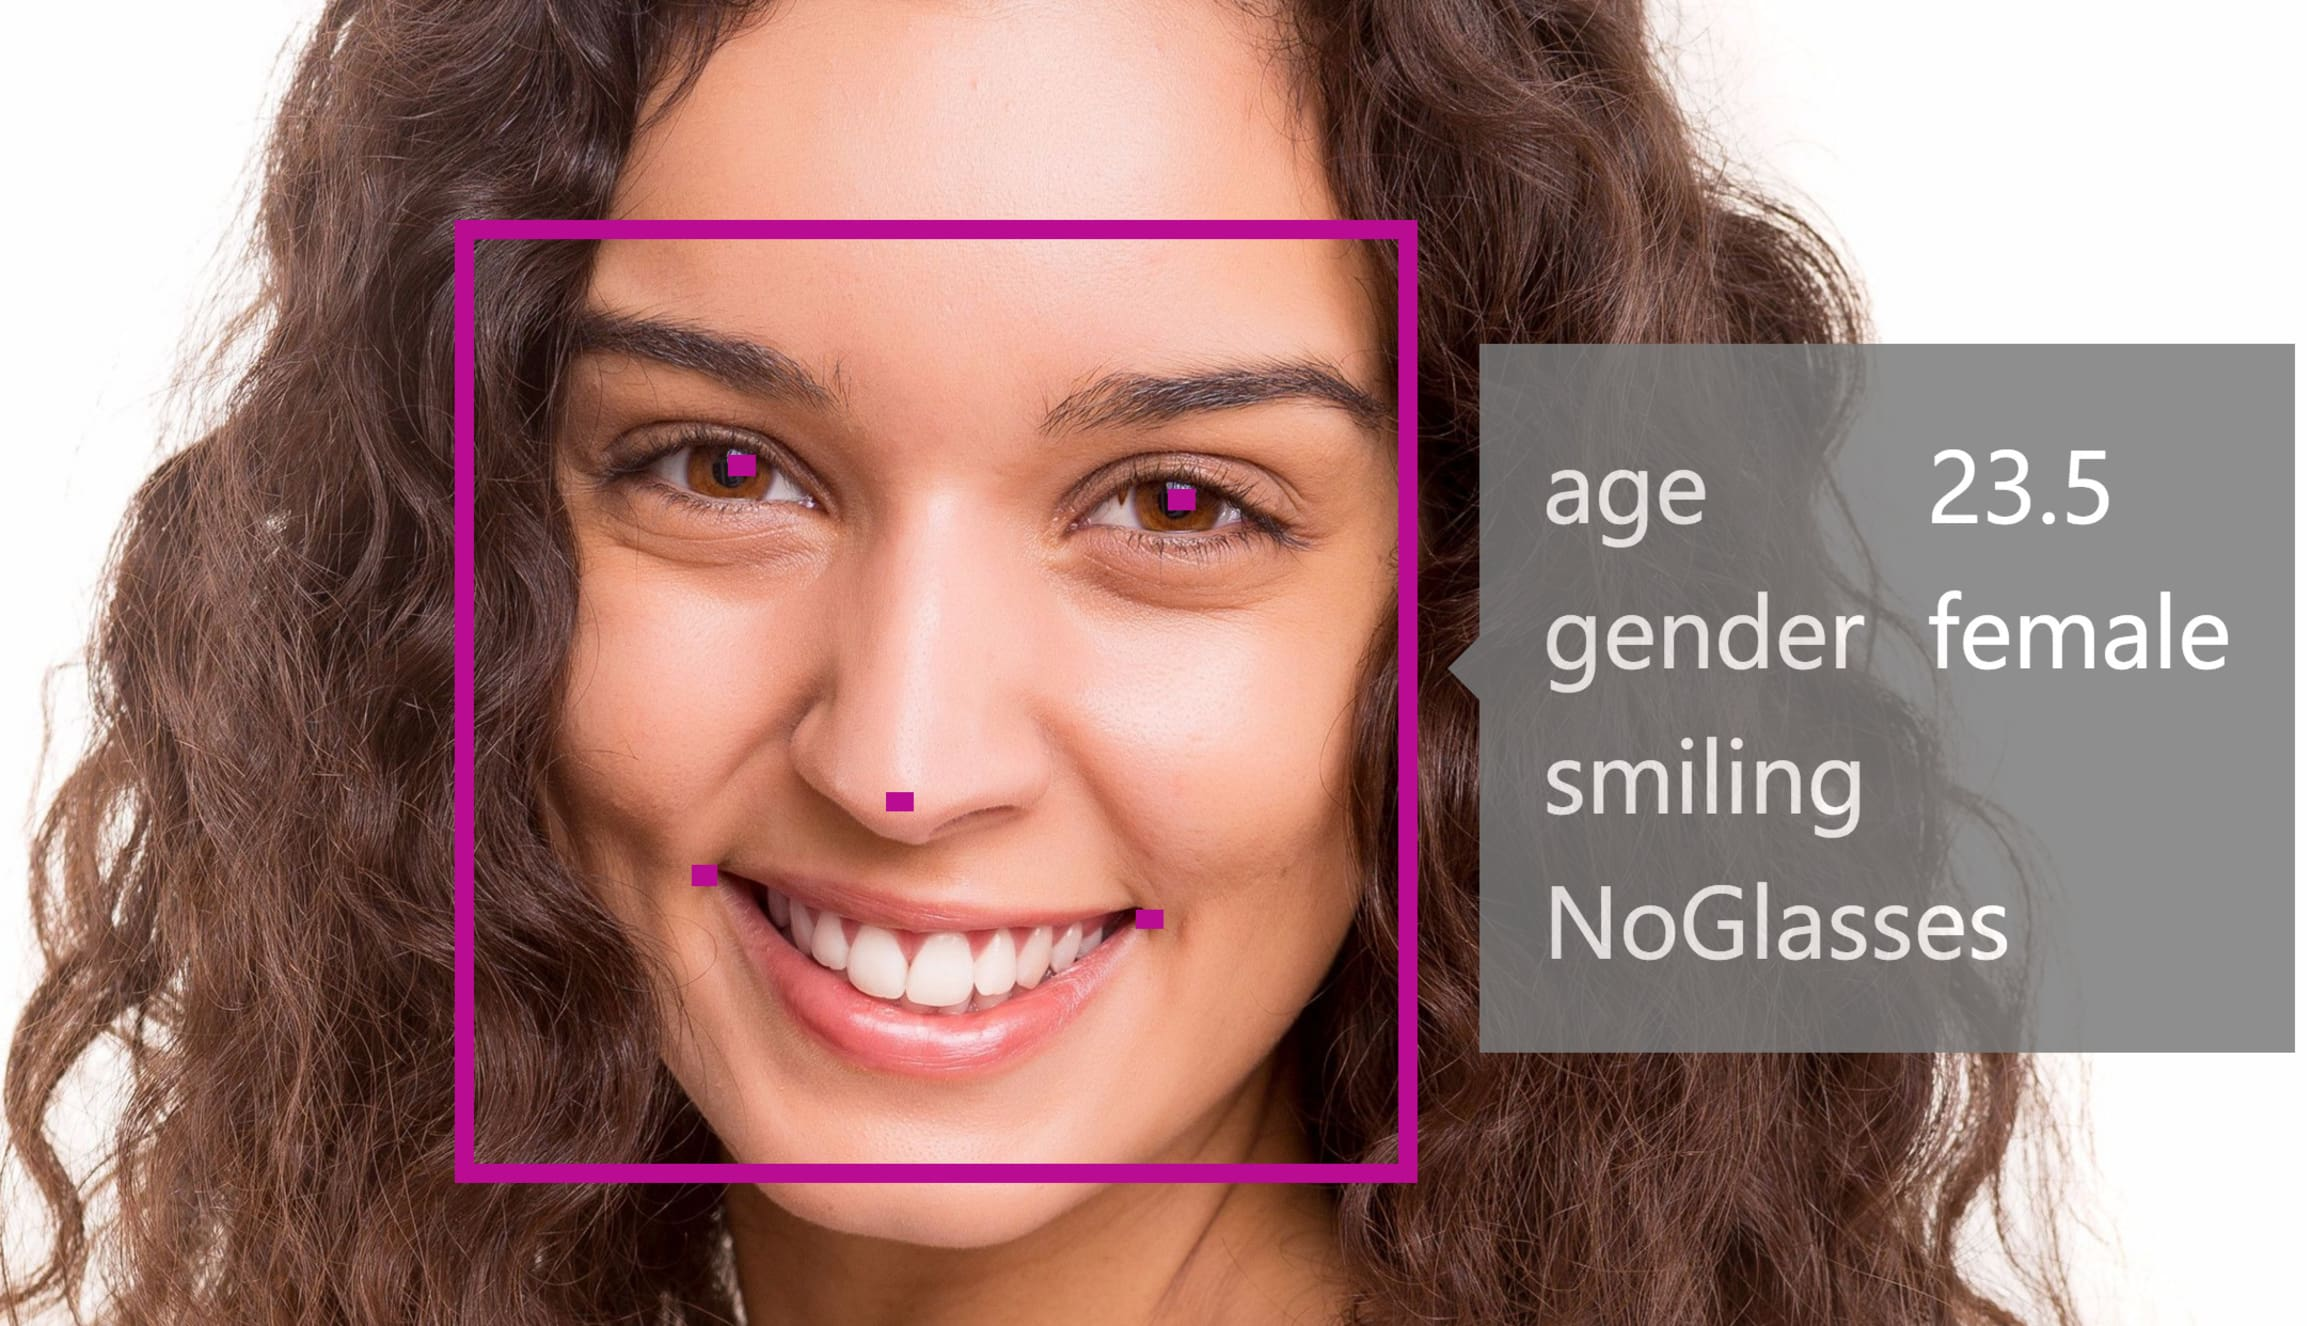 Facial Attribute Detection with Microsoft's Face API